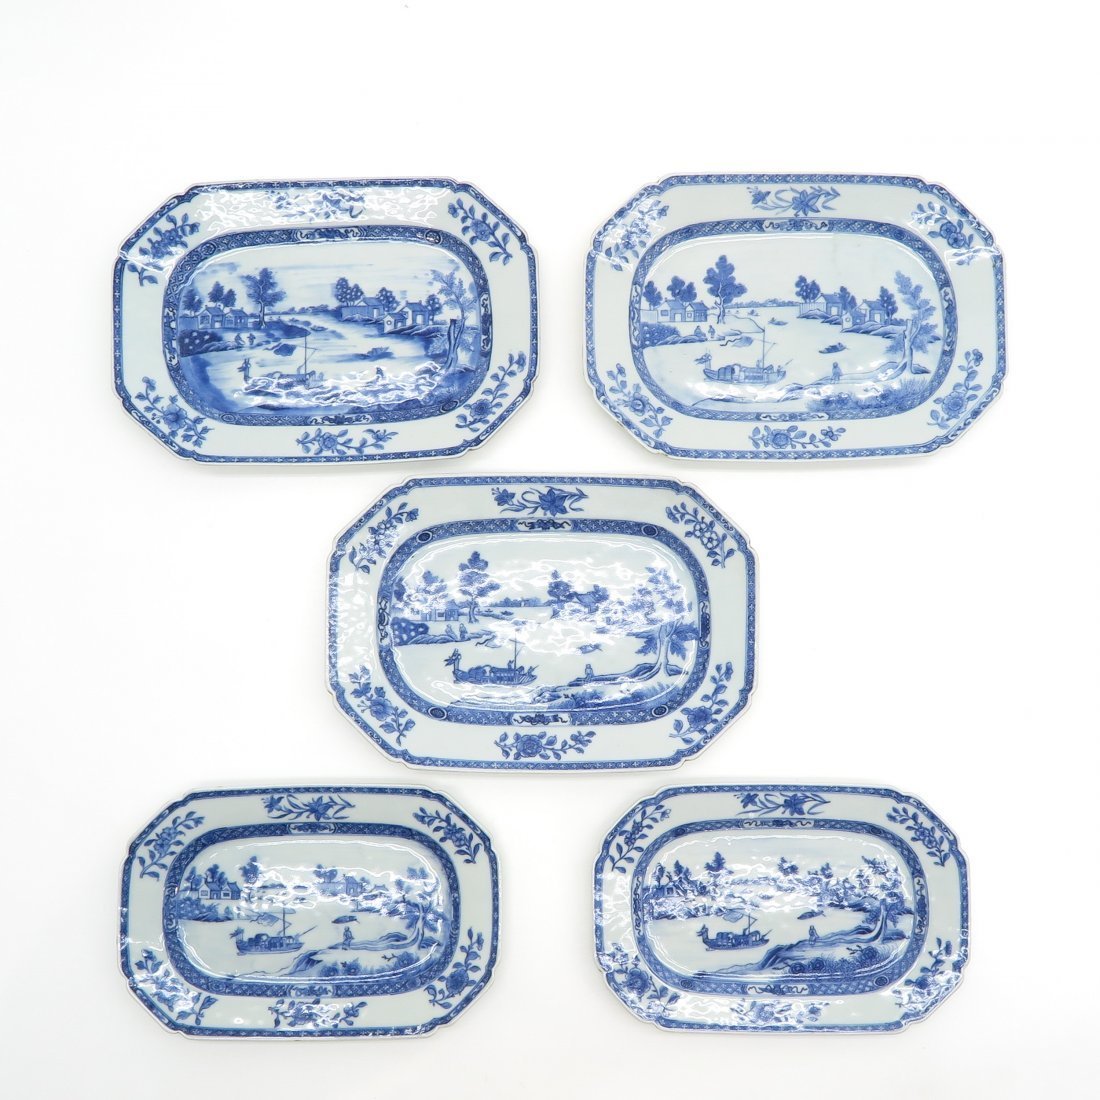 Lot of 18th Century China Porcelain Platters